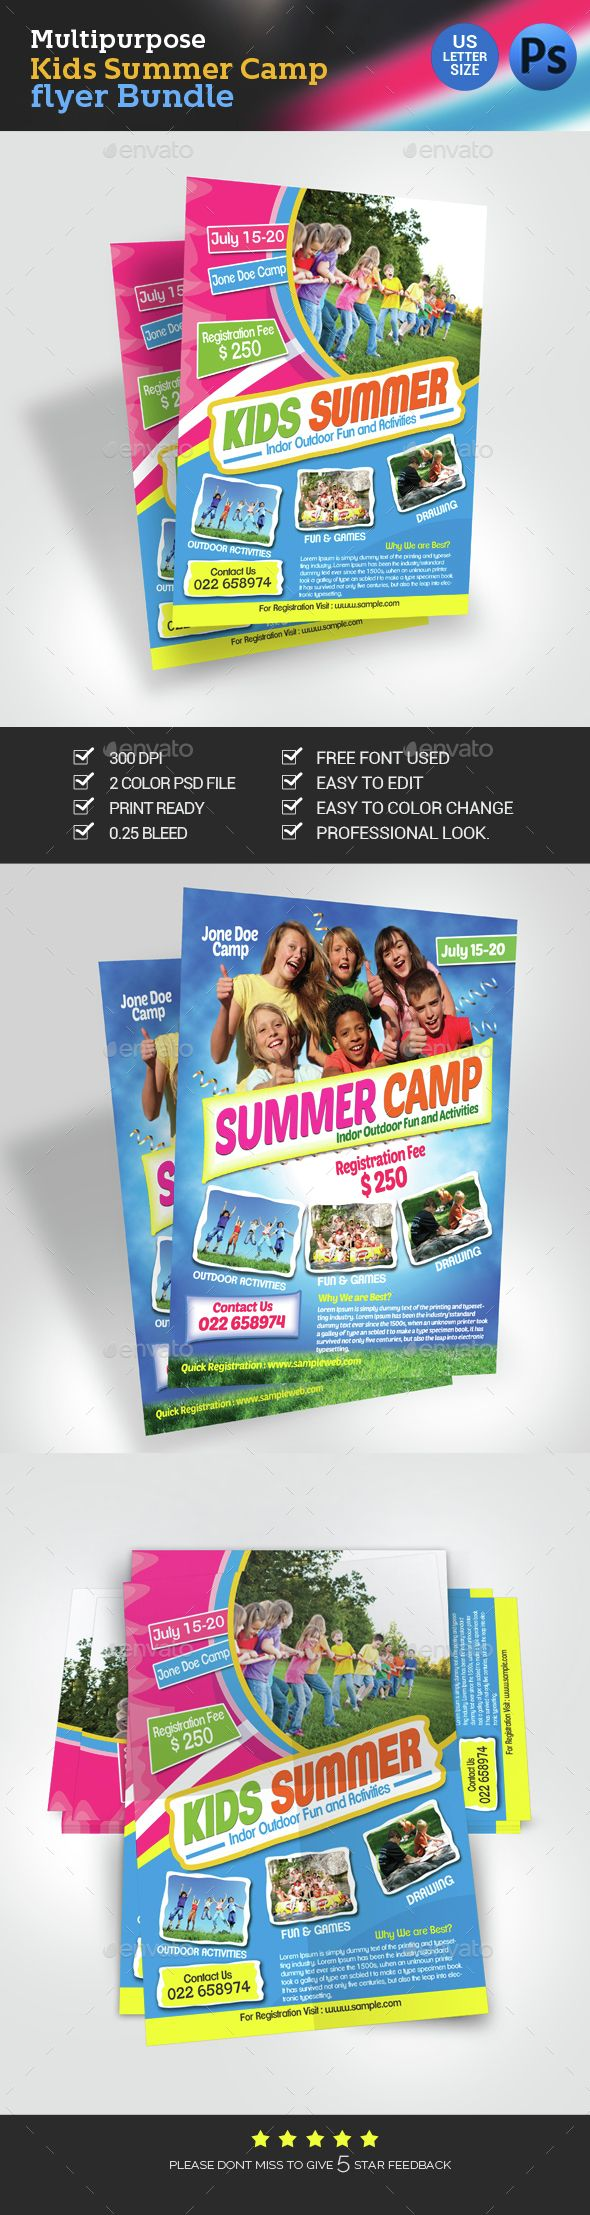 Kids Summer Camp Flyer Bundle  Flyer Template Template And Print